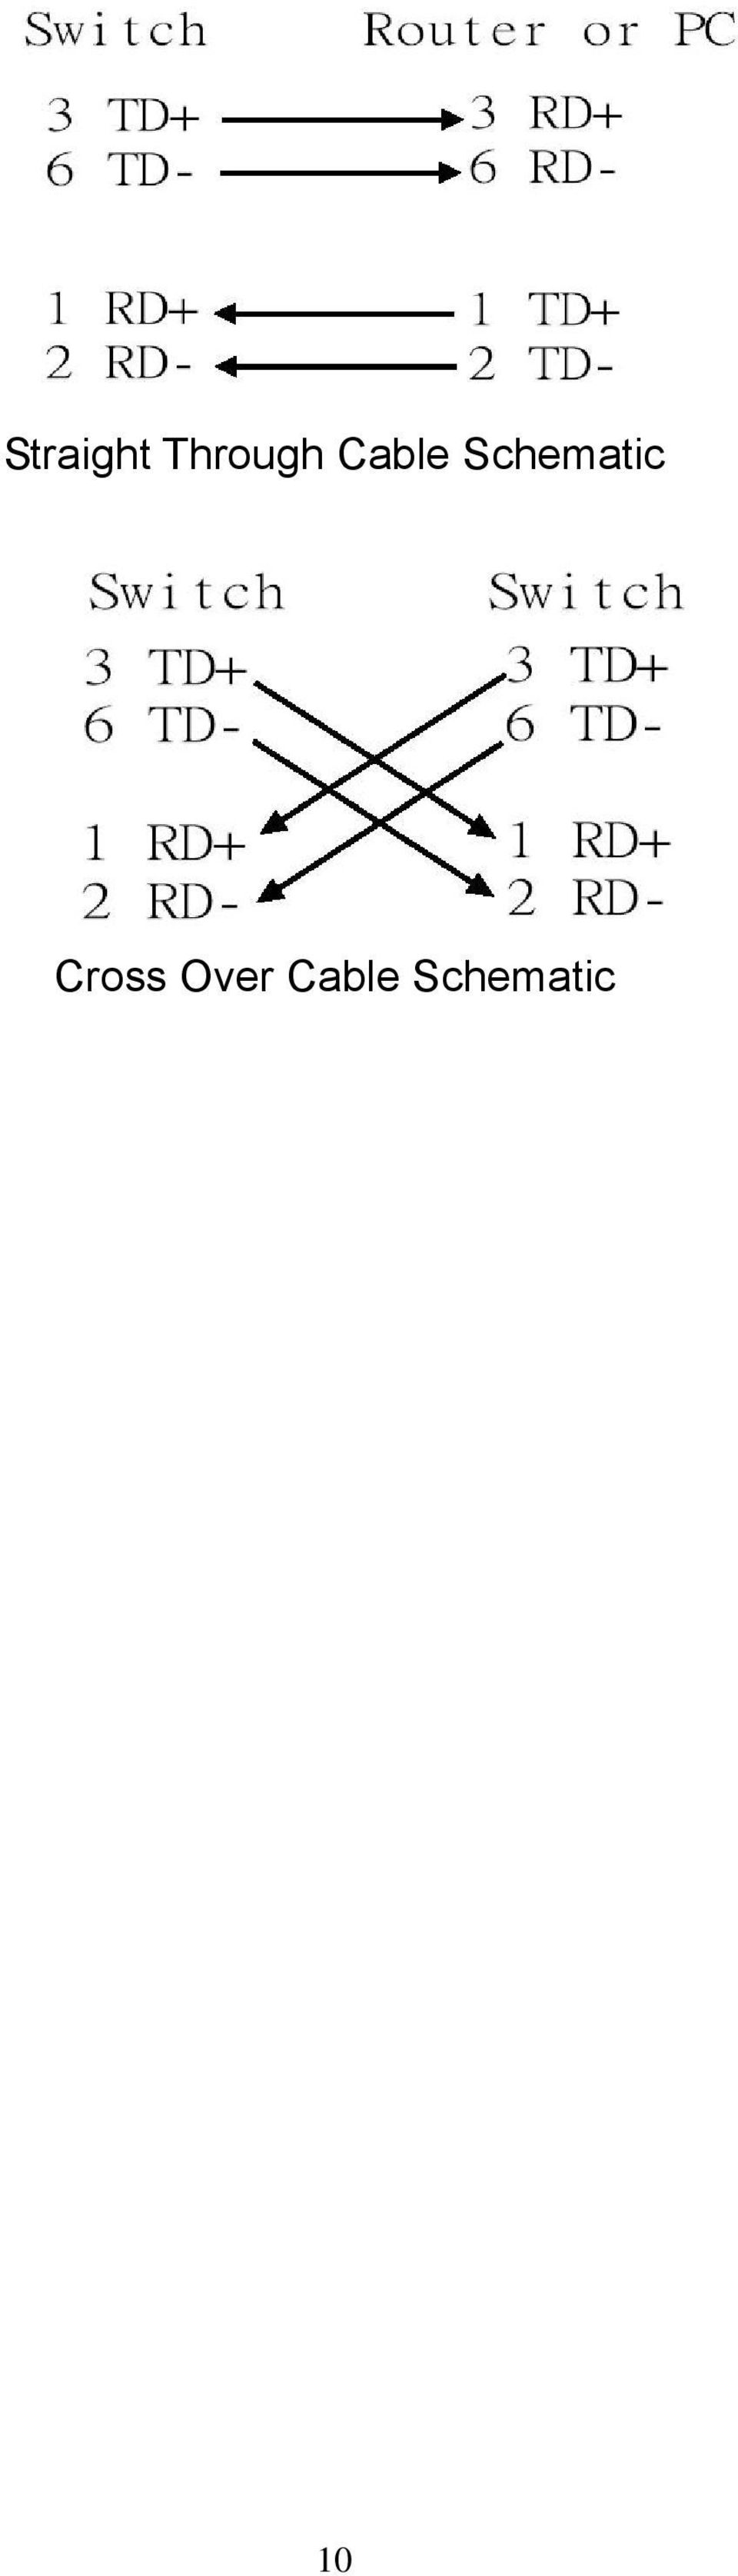 Schematic Cross